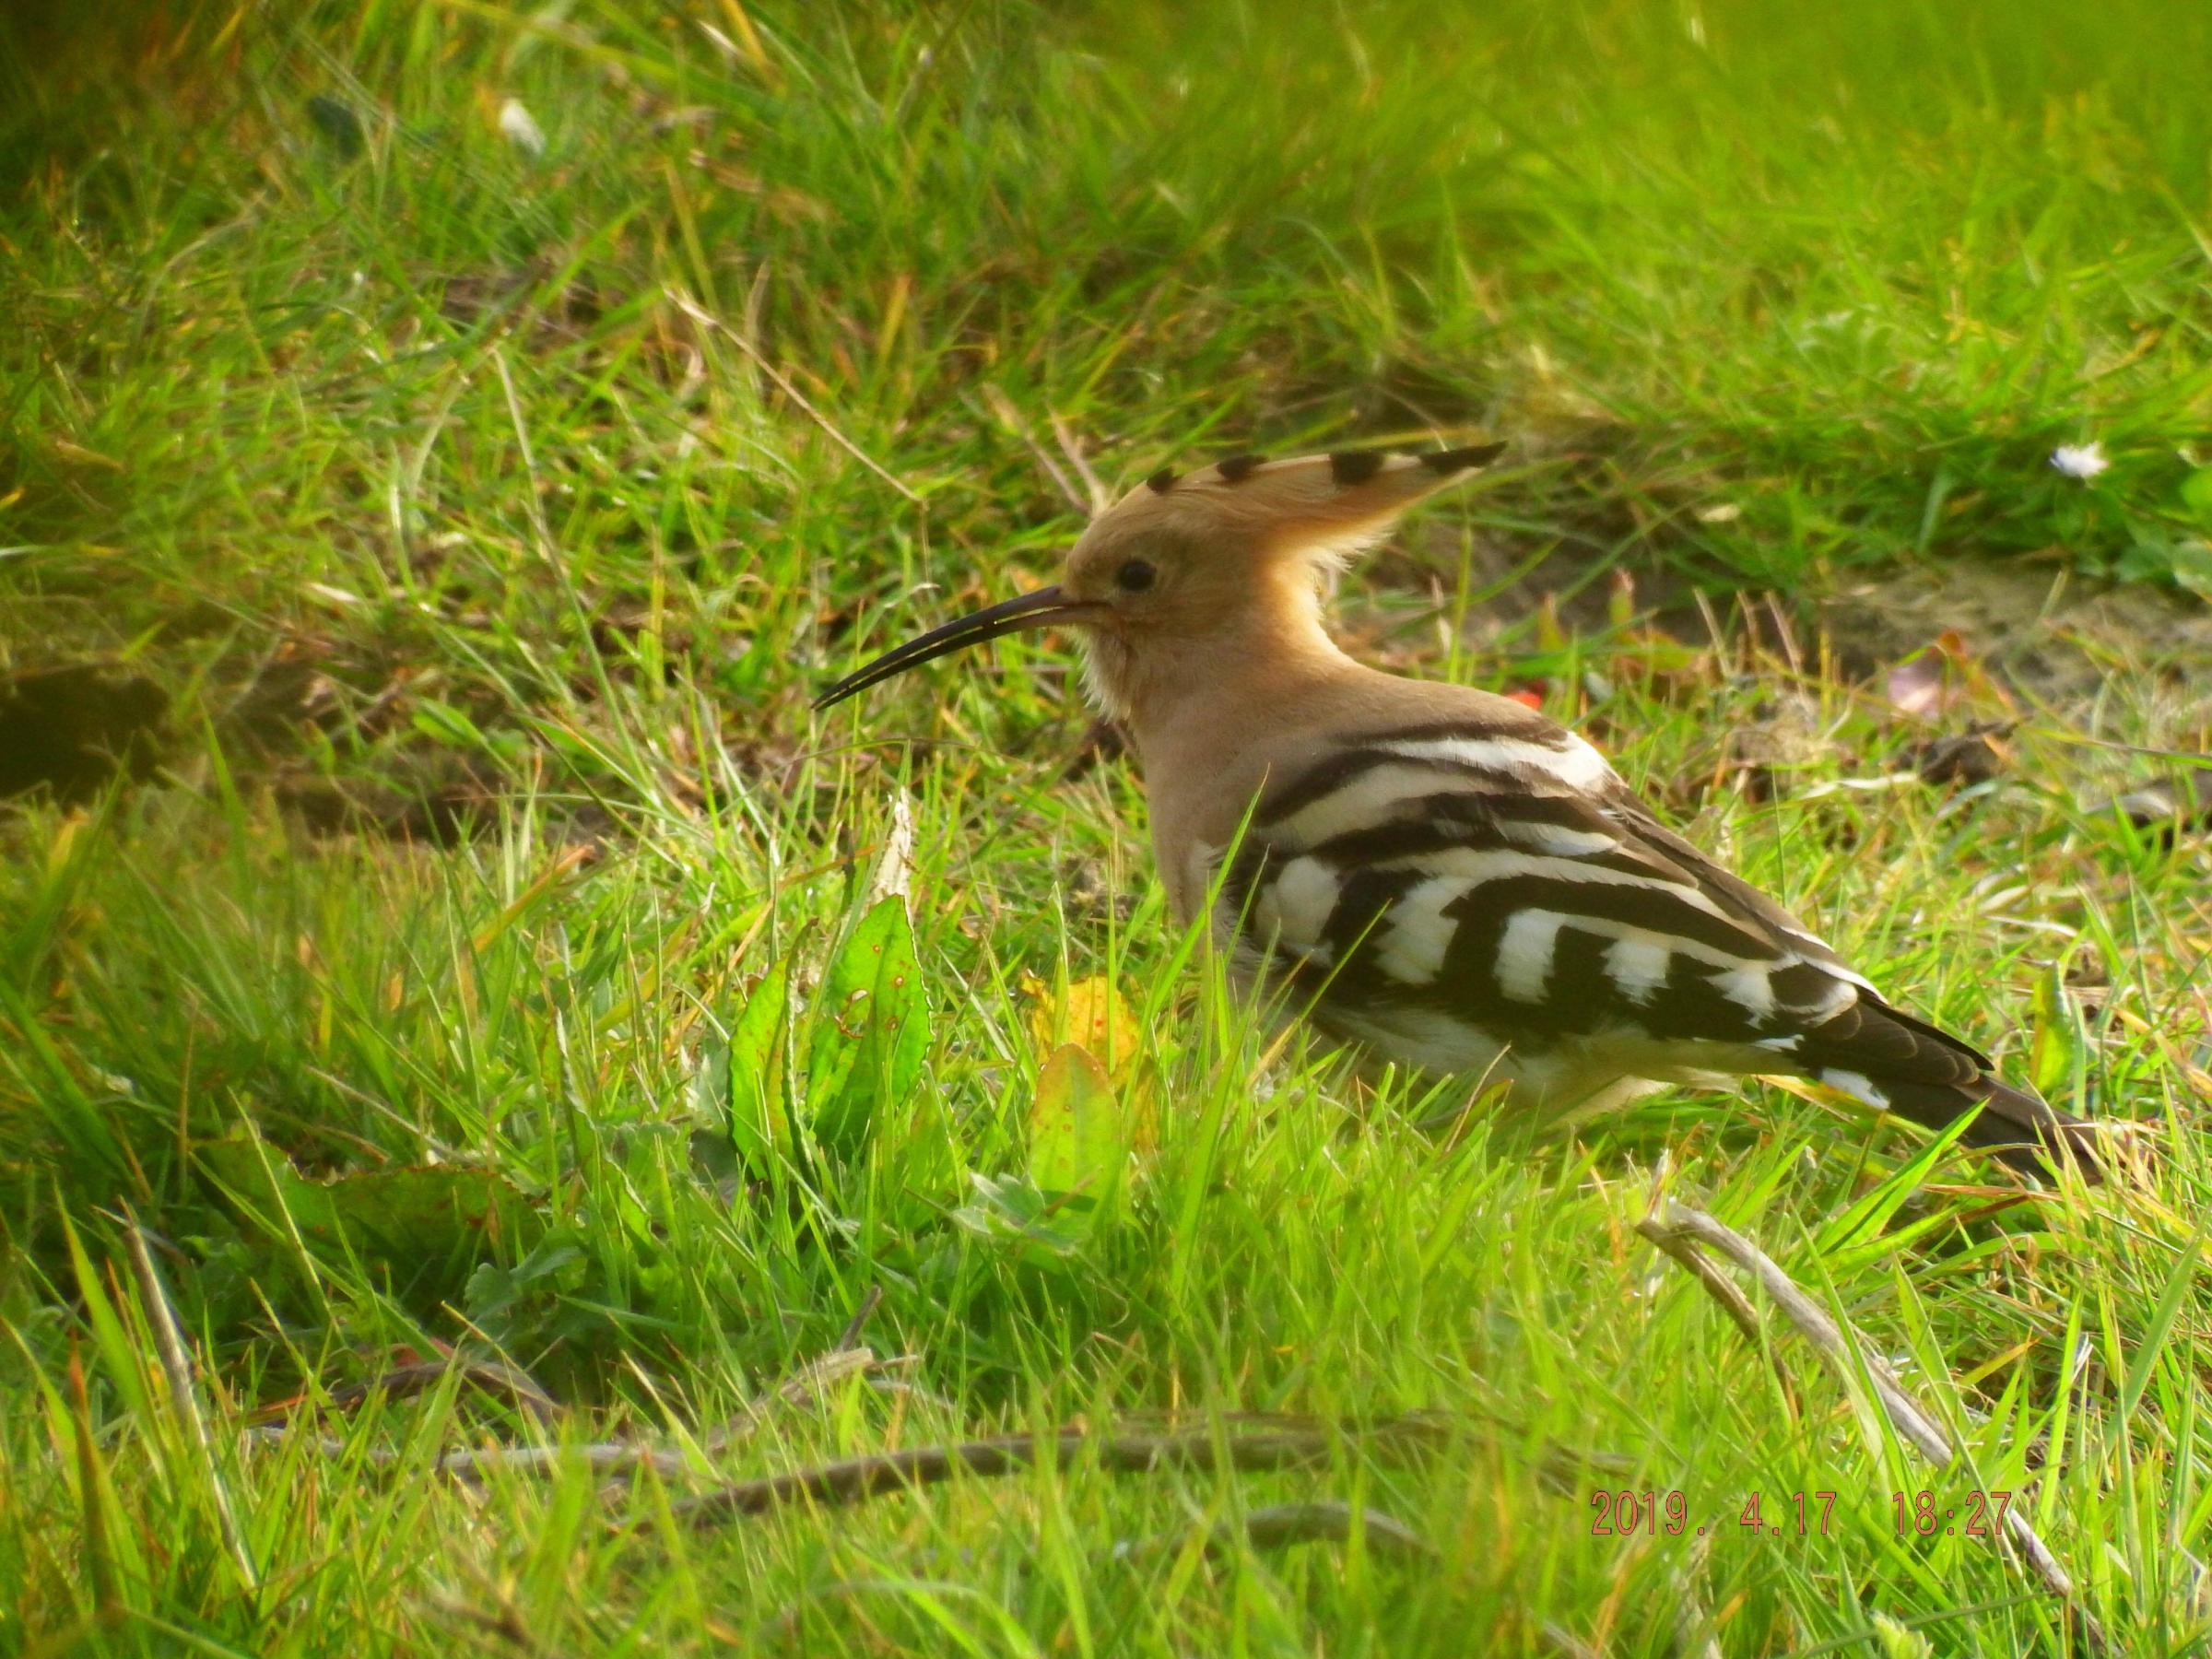 WATCH: Rare hoopoe bird spotted on Isle of Wight captured on video